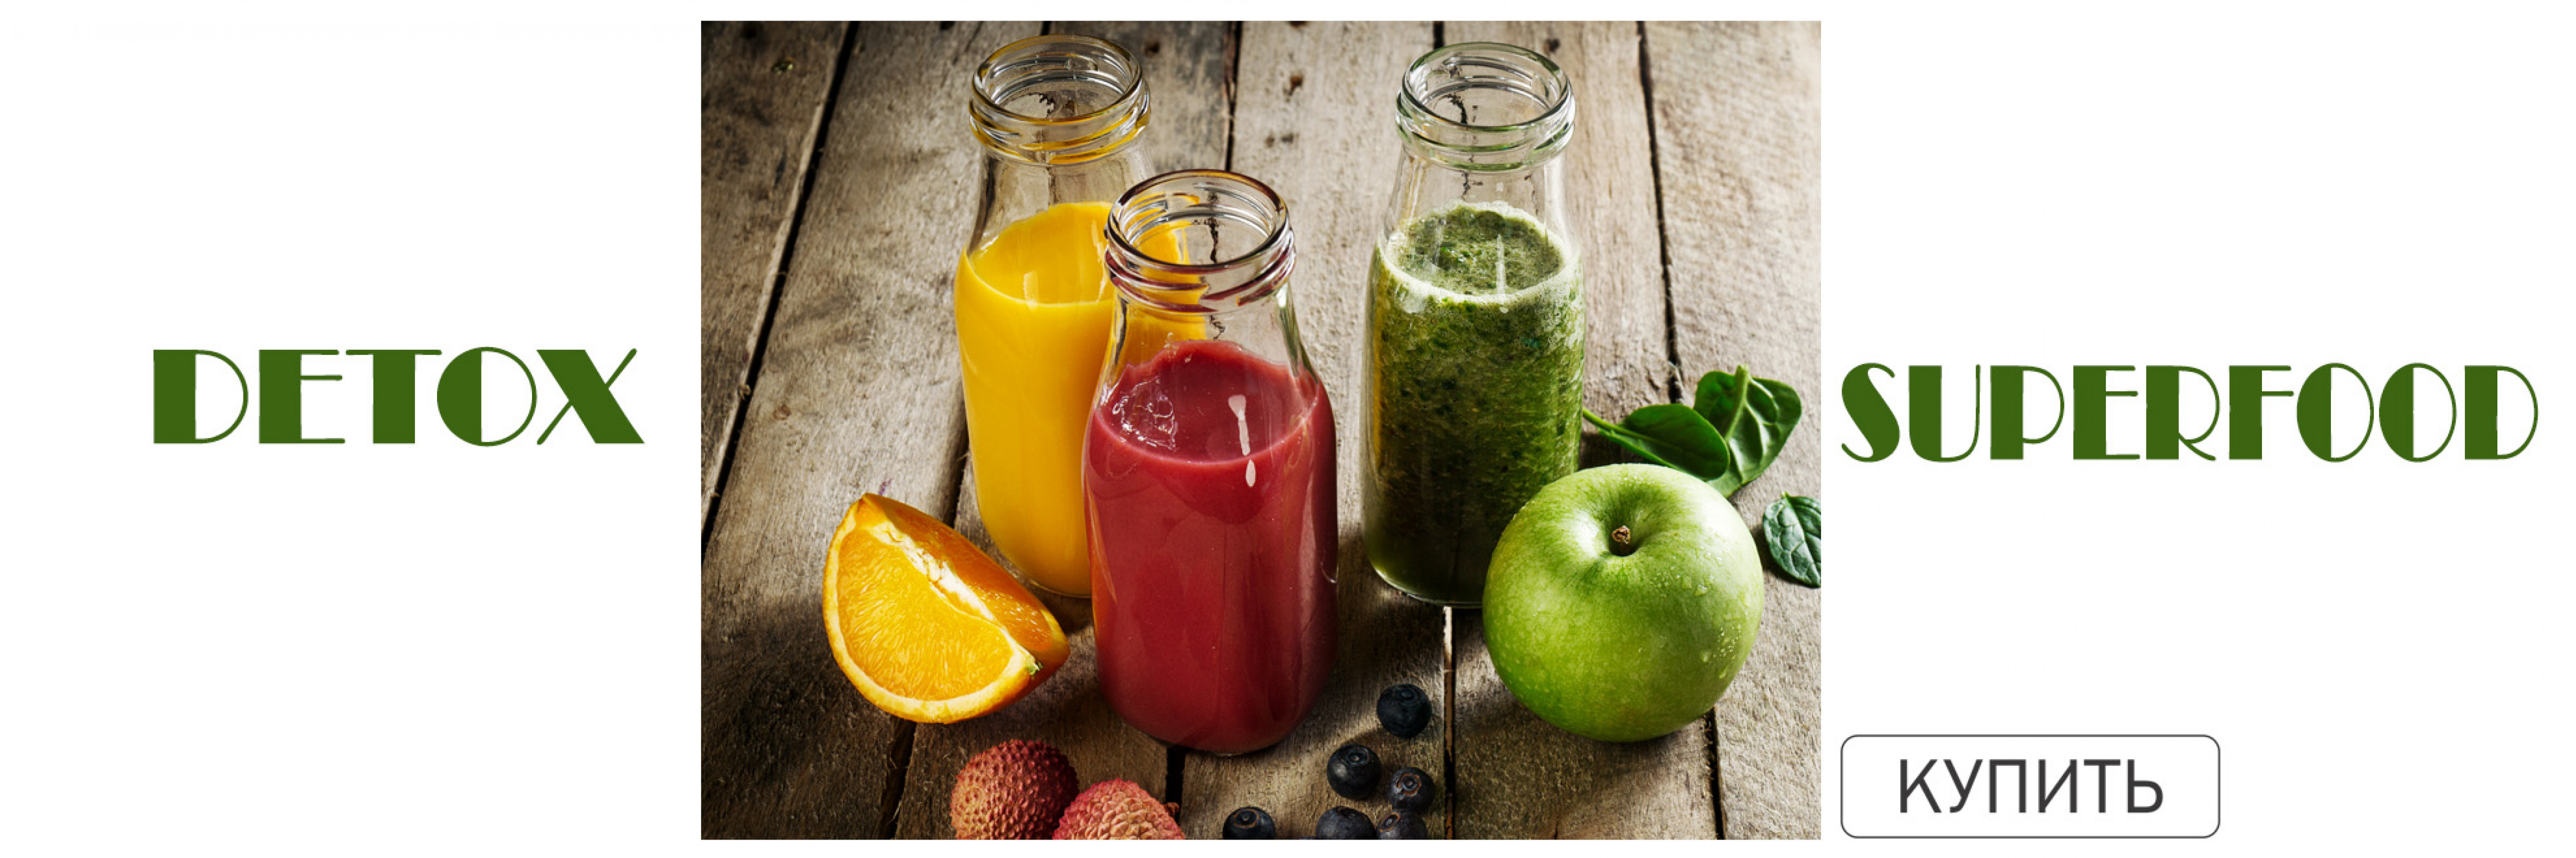 Detox and Superfood